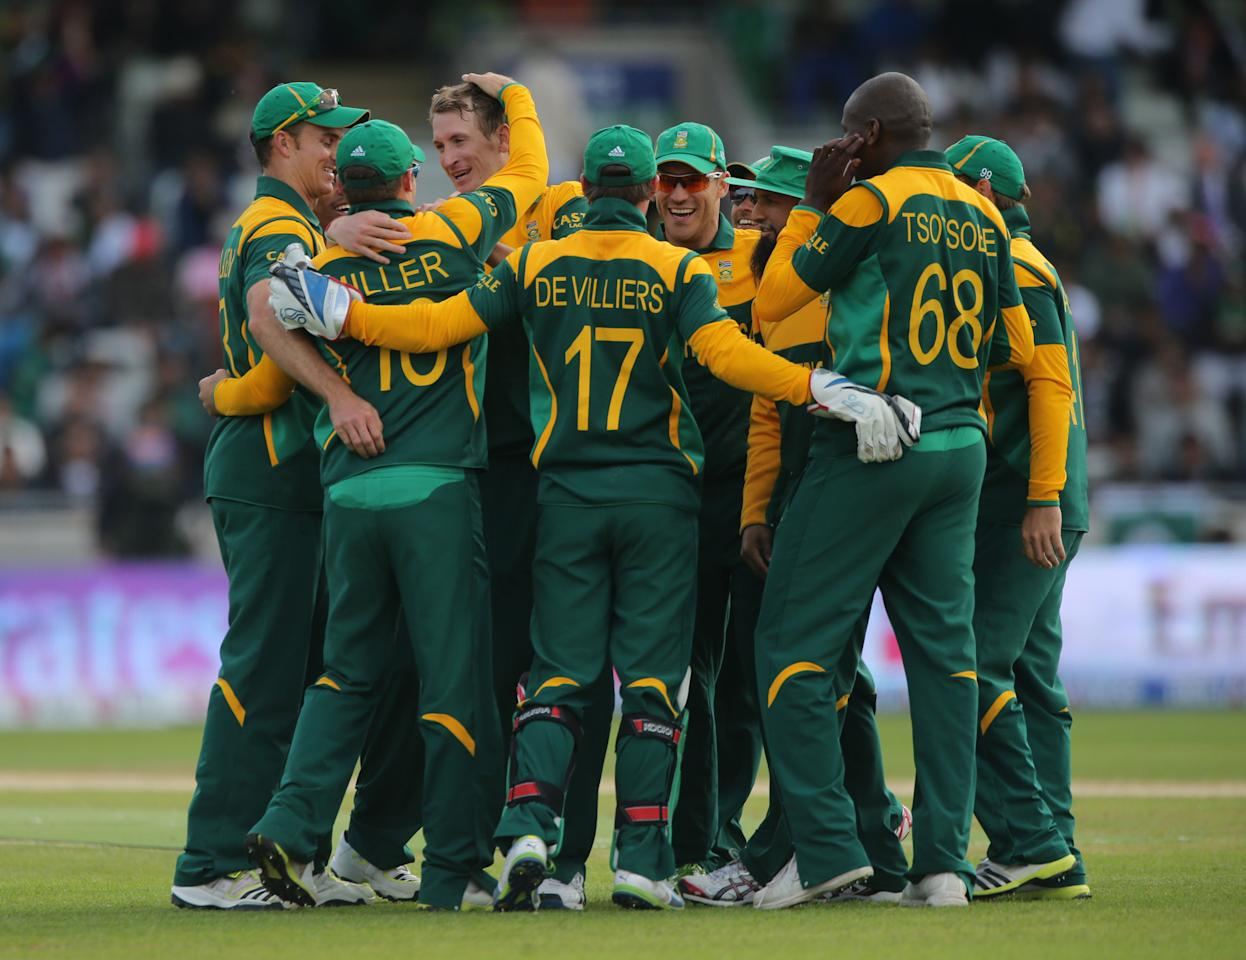 South Africa's bowler Chris Morris celebrates taking the wicket of Pakistan batsman Muhammad Hafeez during the ICC Champions Trophy match at Edgbaston, Birmingham.